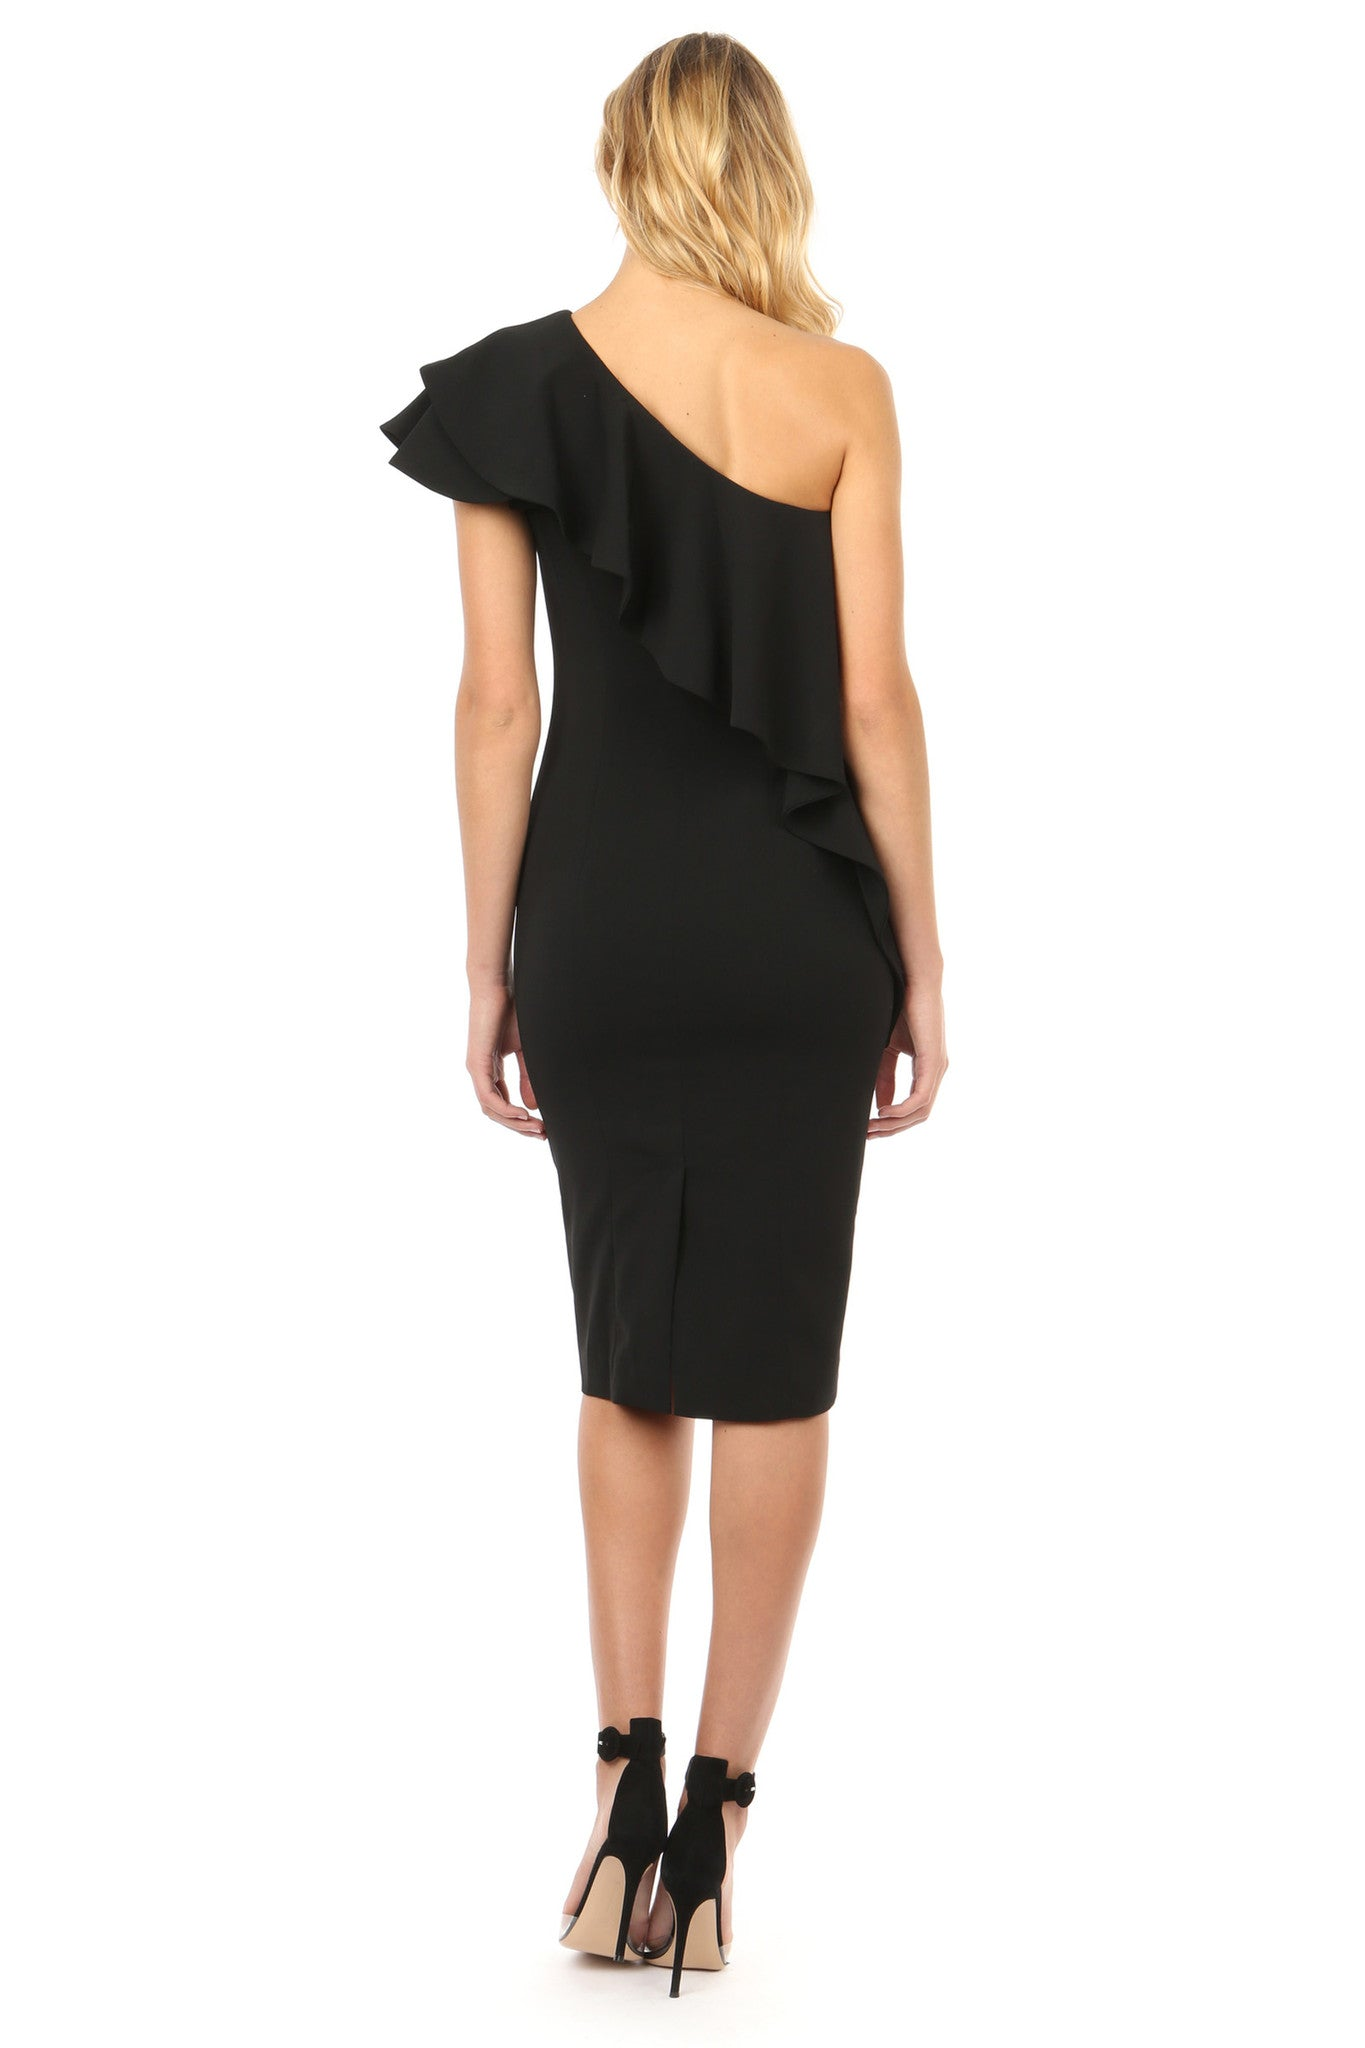 Jay Godfrey Black Ruffle One Shoulder Dress - Back View